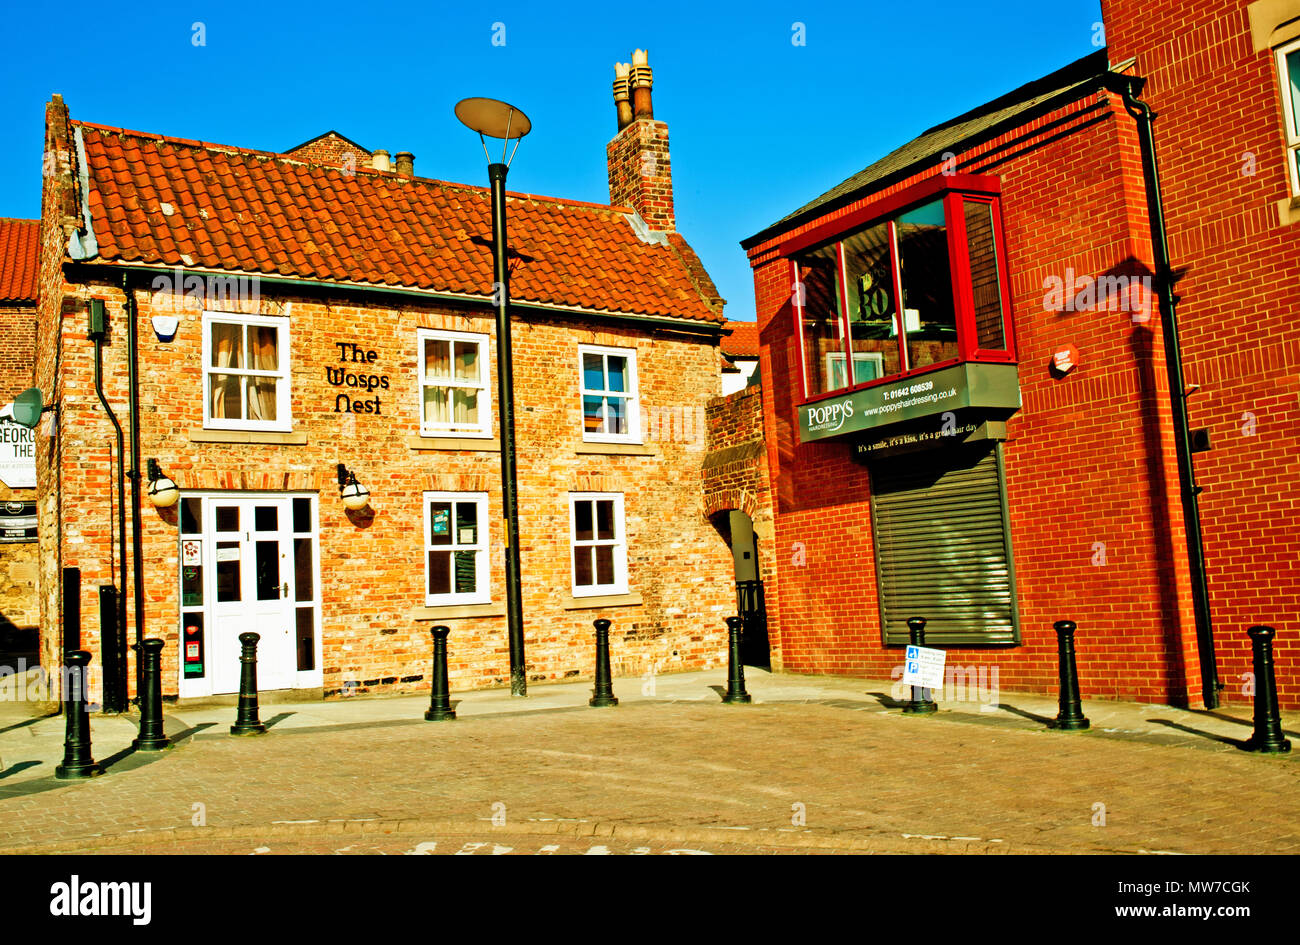 The Wasps Nest, Calverts Yard, Stockton on Tees, Cleveland, England - Stock Image